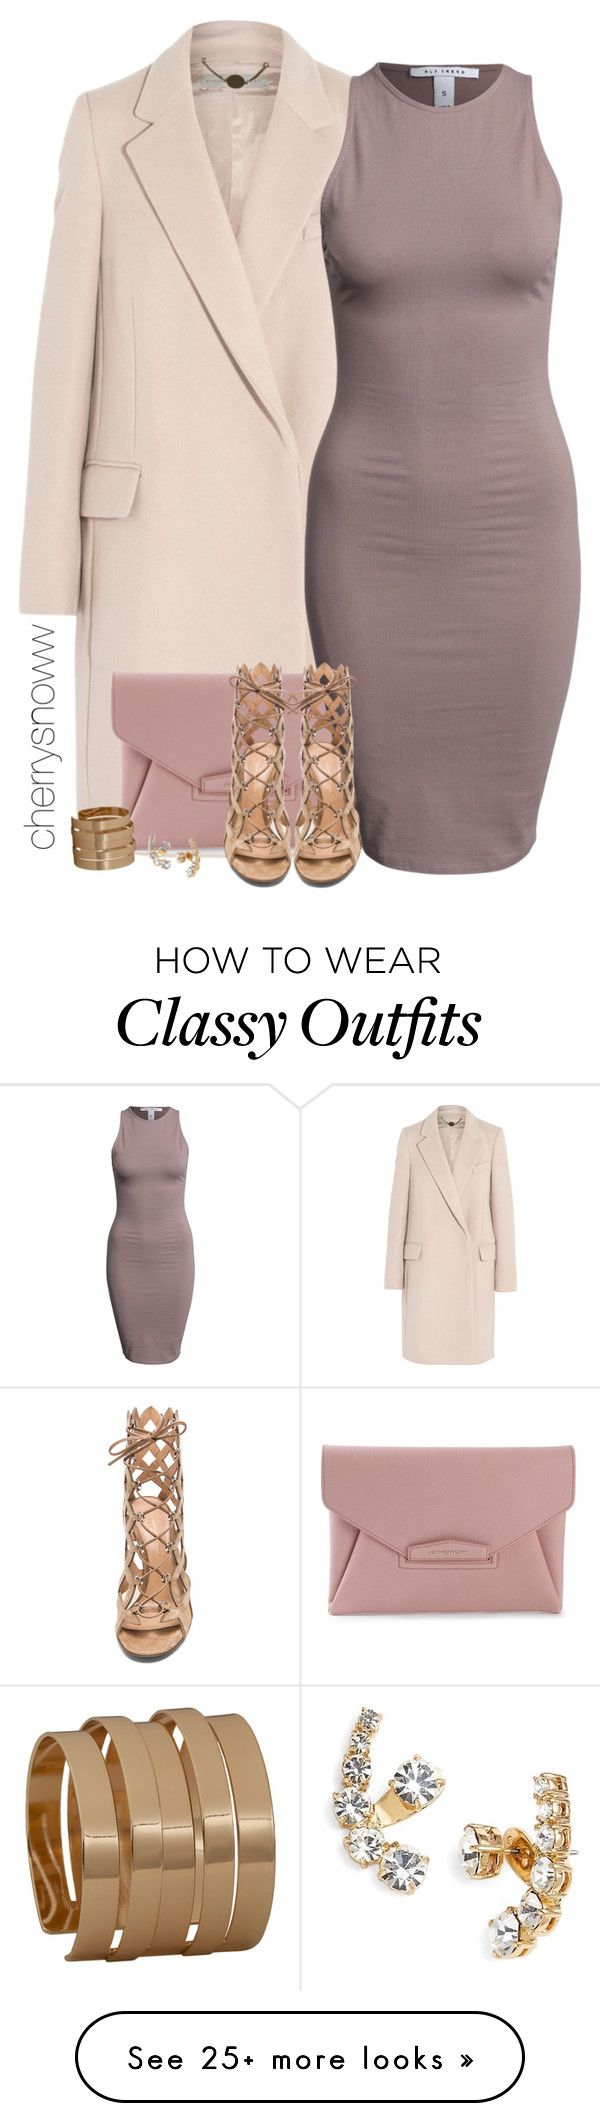 """Classy chic bodycon dress and lace up heels outfit"" by cherrysnoww on Polyvore featuring STELLA McCARTNEY, Givenchy, NLY Trend, Gianvito Rossi, Club Manhattan and Kate Spade"